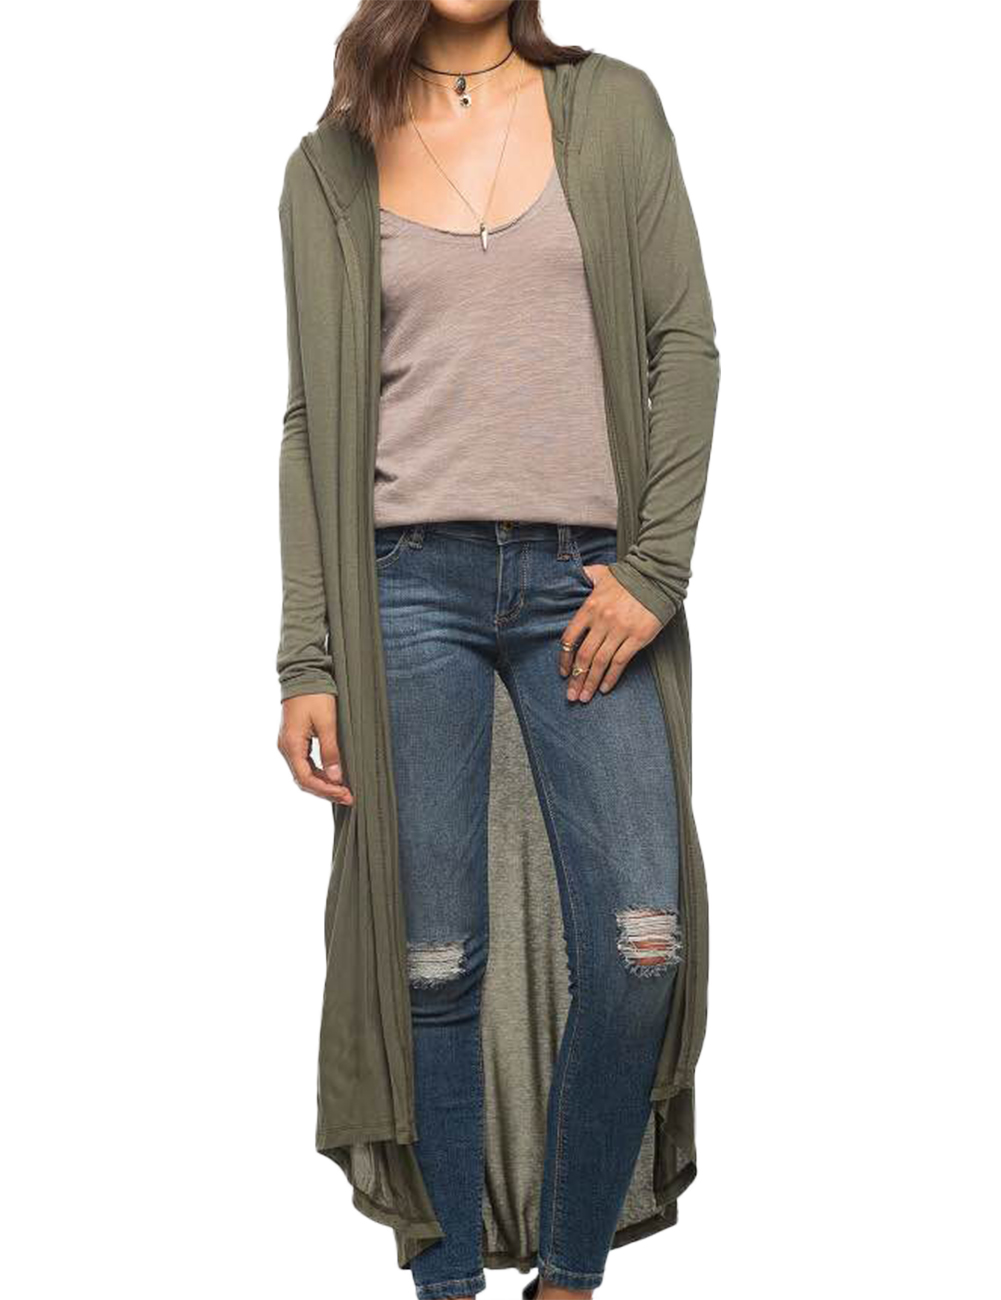 Womens Casual Long Sleeve Knit Cardigan Sweater Hooded ...